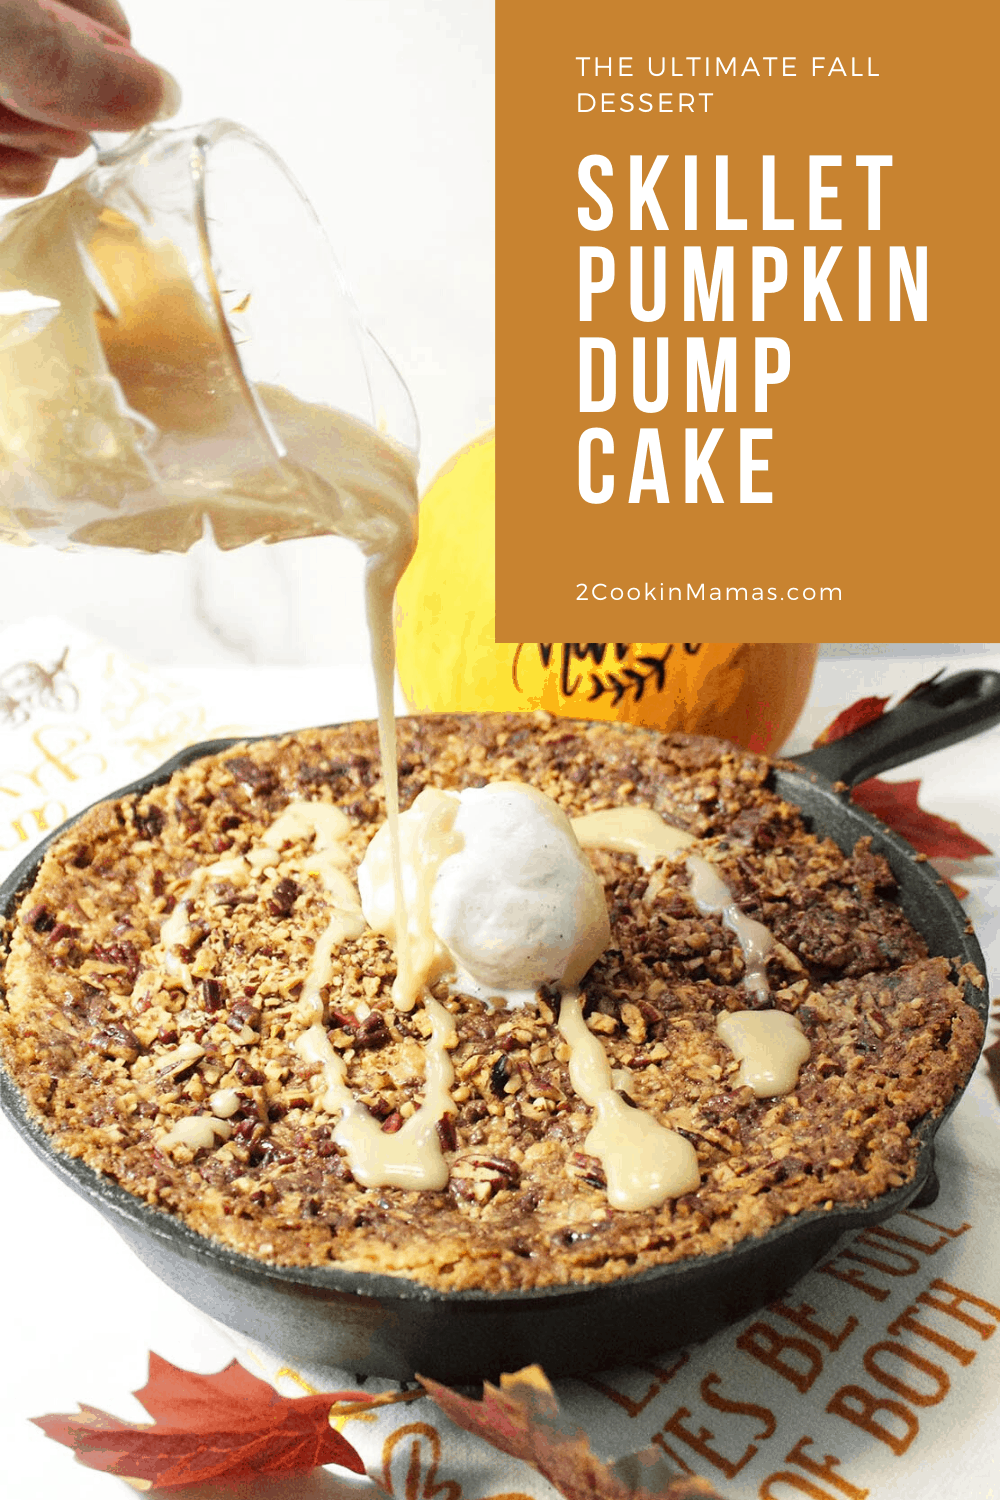 Skillet Pumpkin Dump Cake with Pecans & Toffee